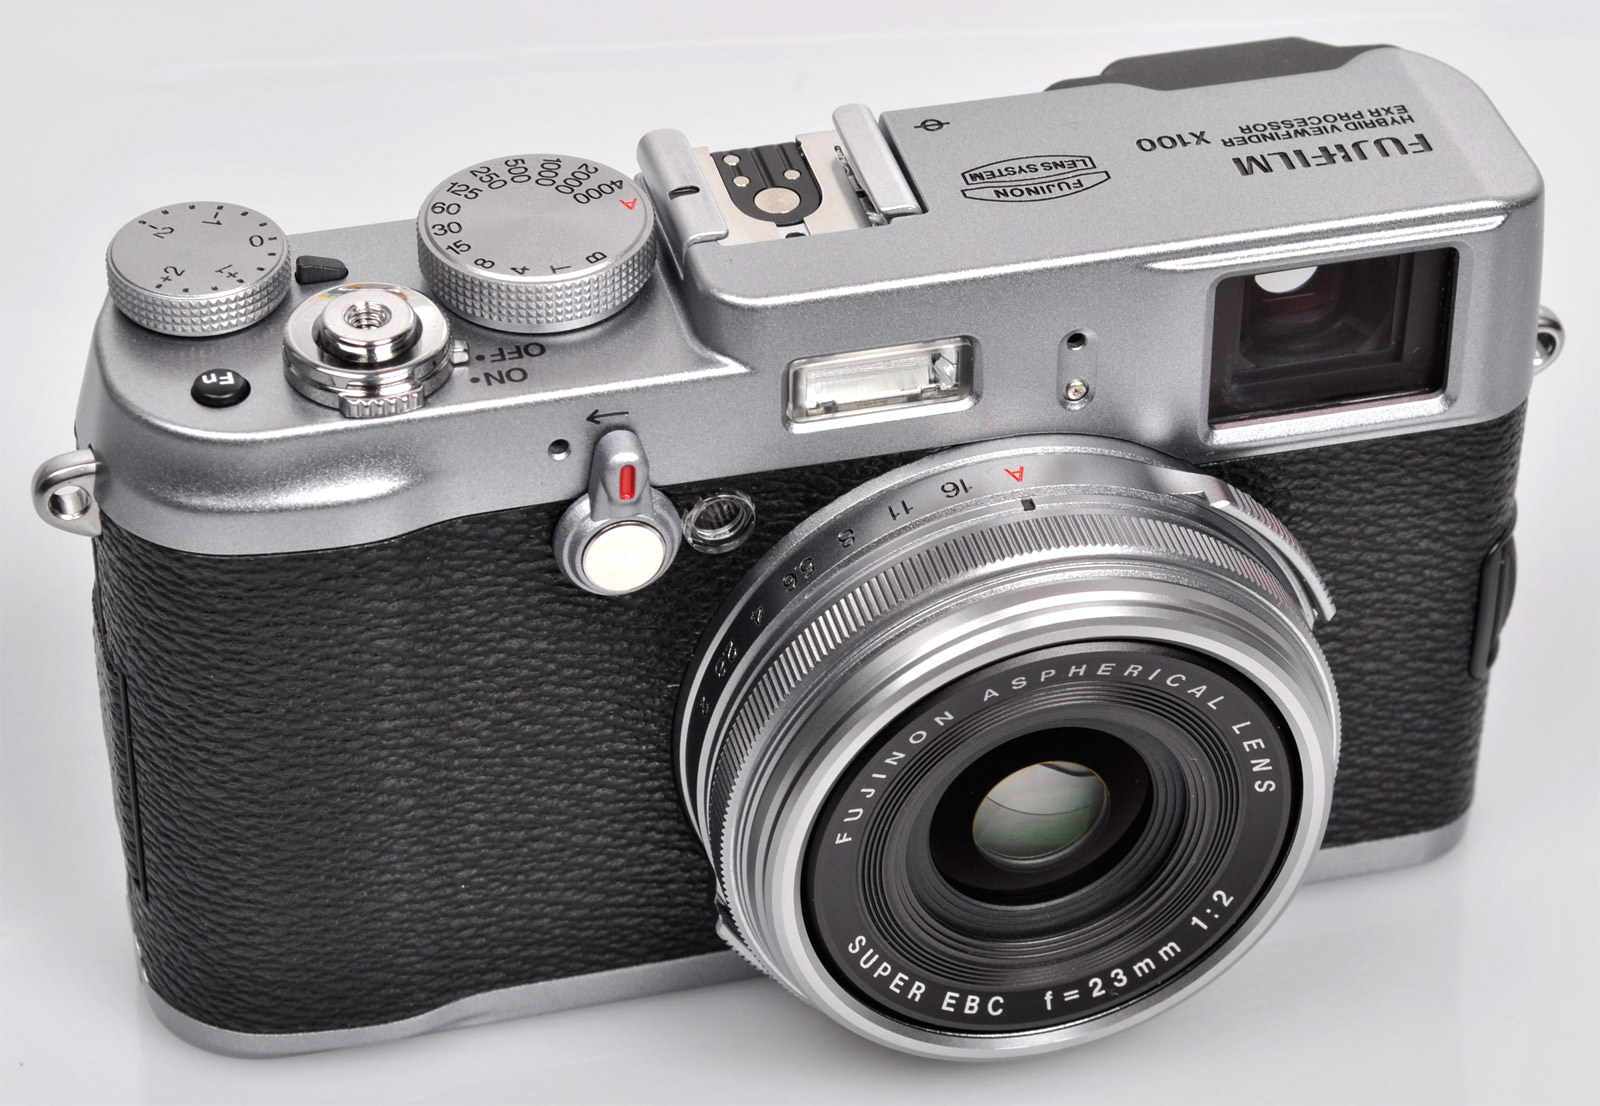 Fuji Fuji Fujifilm Finepix X100 Digital Camera Review Ephotozine